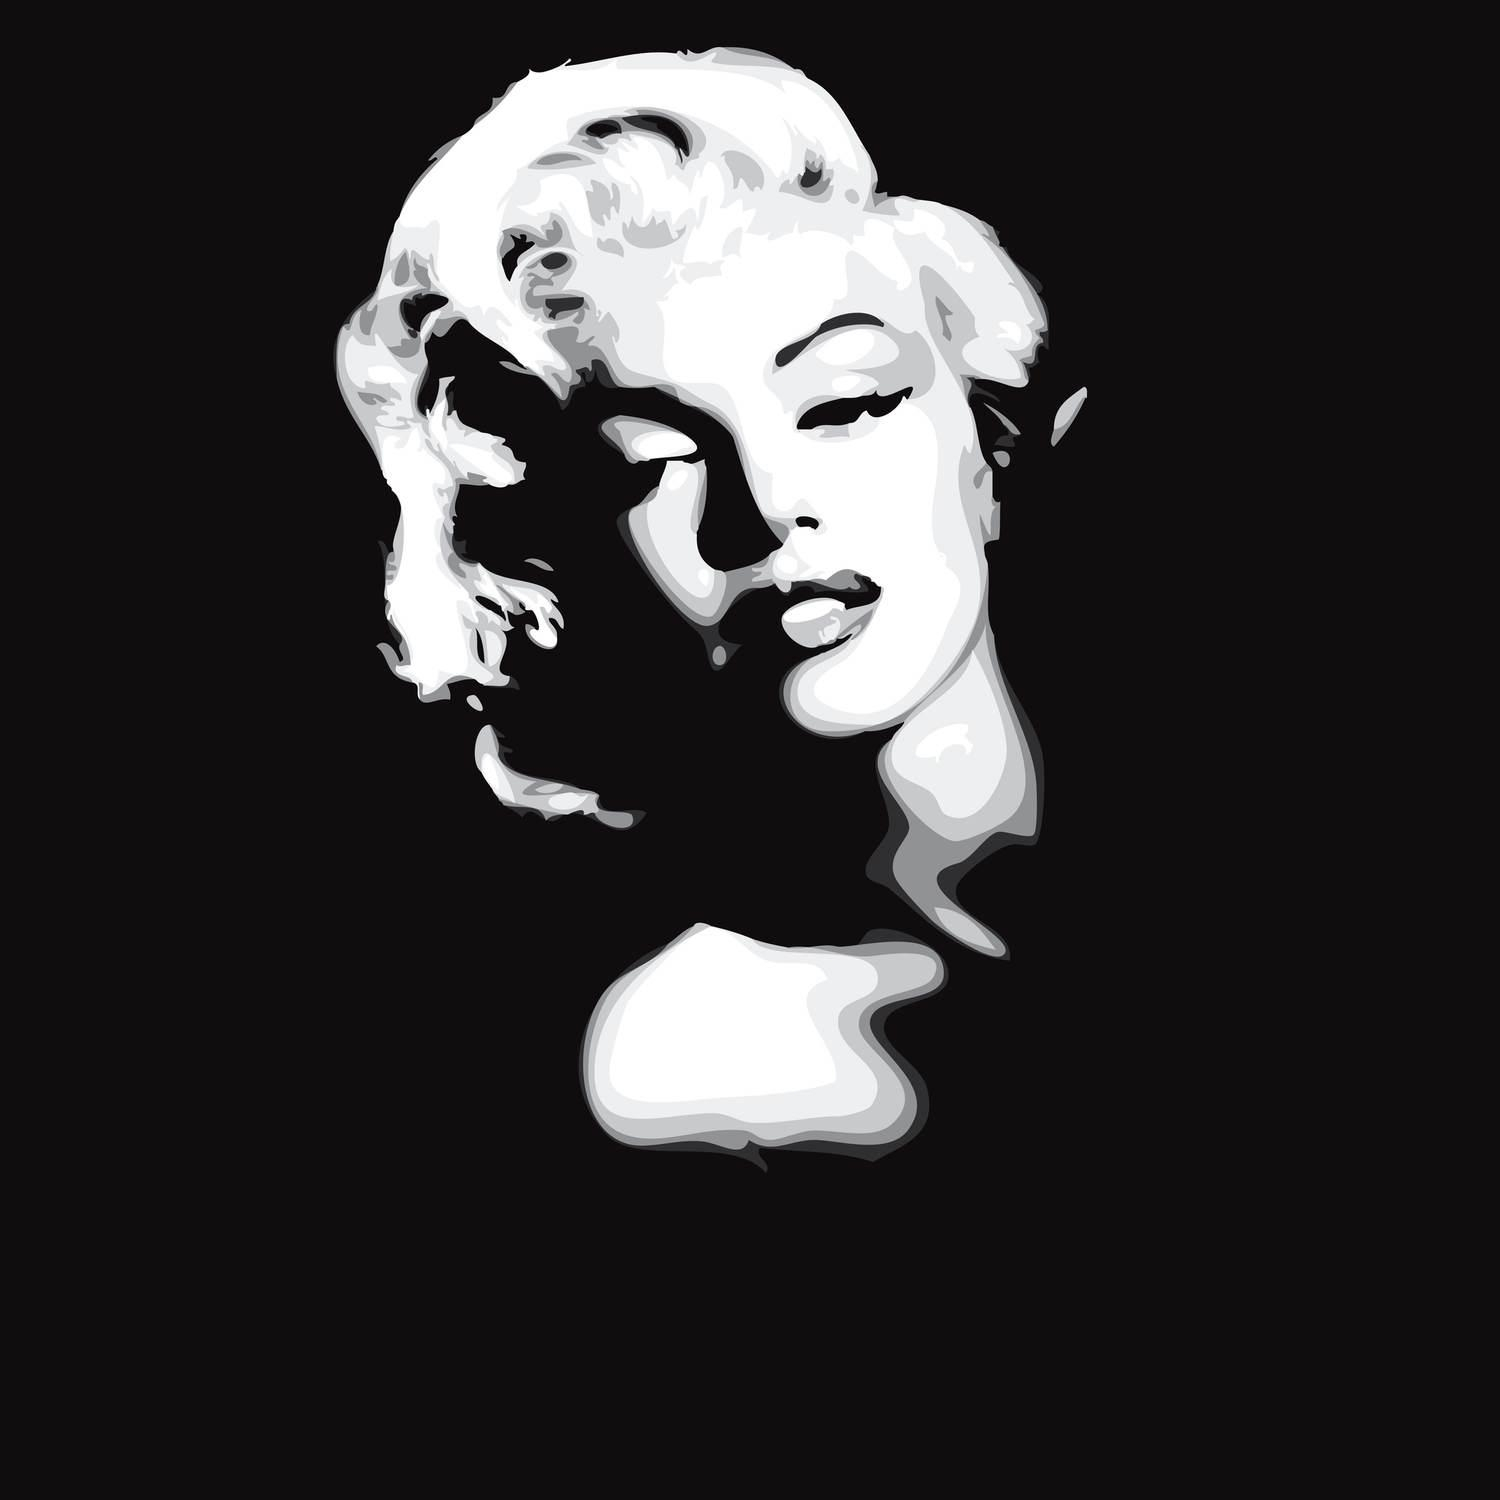 Wall Mural Marilyn Monroe Black And White | Norma – Happywall With Marilyn Monroe Black And White Wall Art (Image 20 of 20)